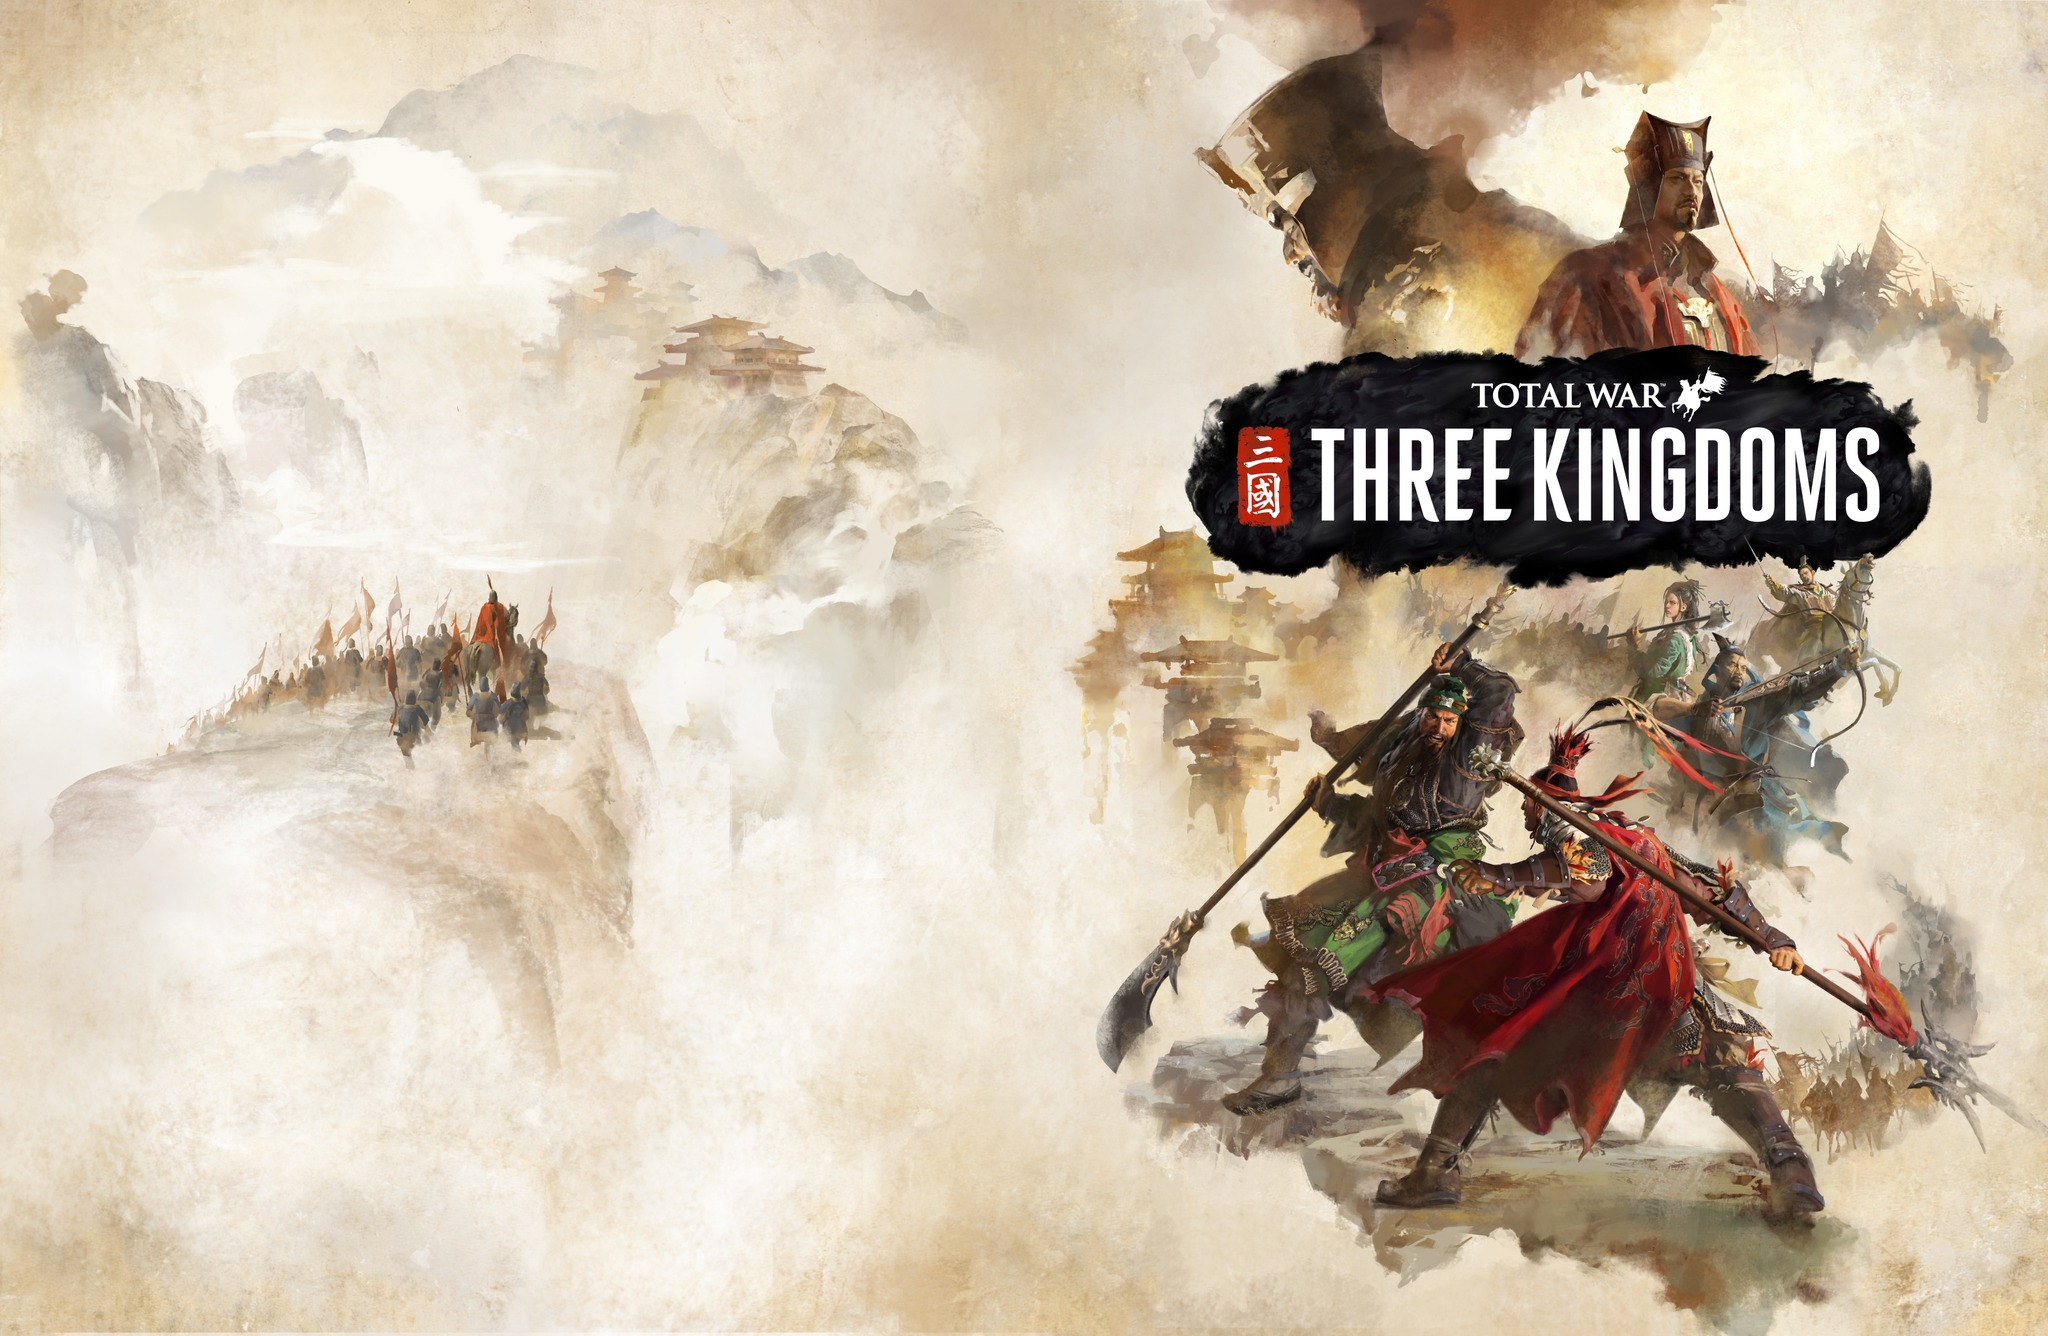 Total War: Three Kingdoms hands-on: equal parts exciting and